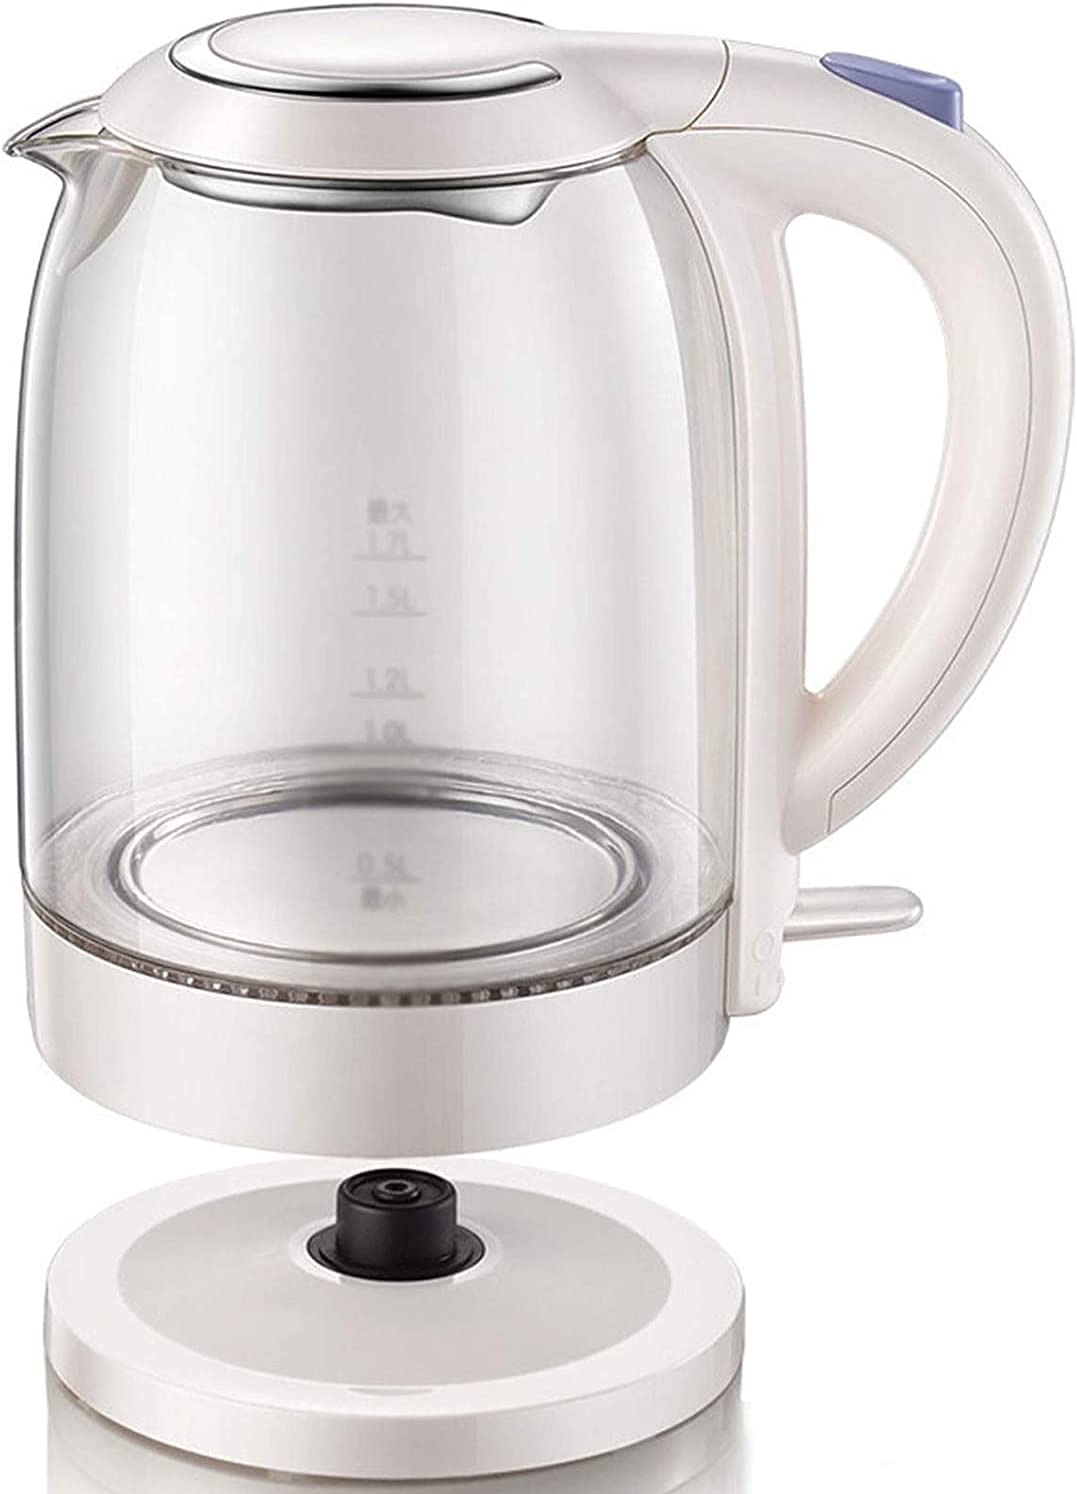 ZHZHUANG Portable Electric Super beauty product restock quality top Kettle Lowest price challenge Fa 1.7L Glass